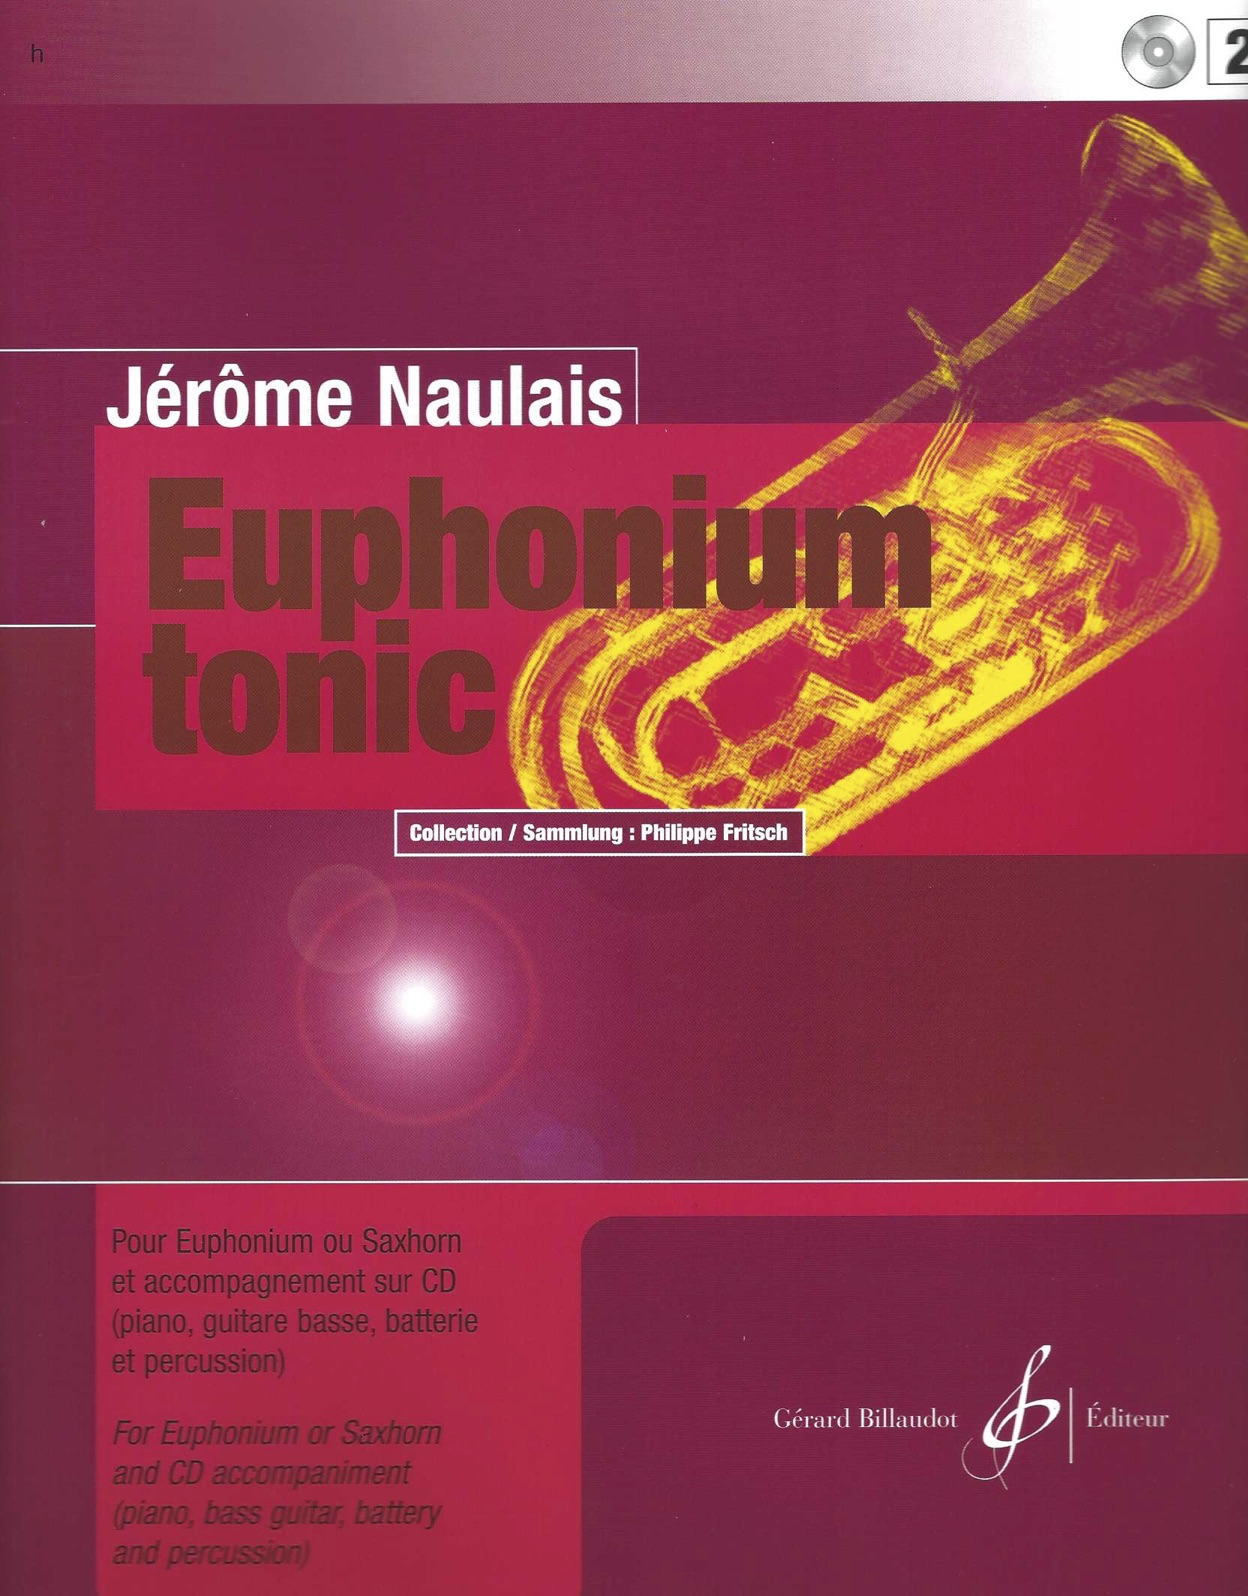 Euphonium Tonic 2 - Jerome Naulais - Euphonium book and CD accompaniment